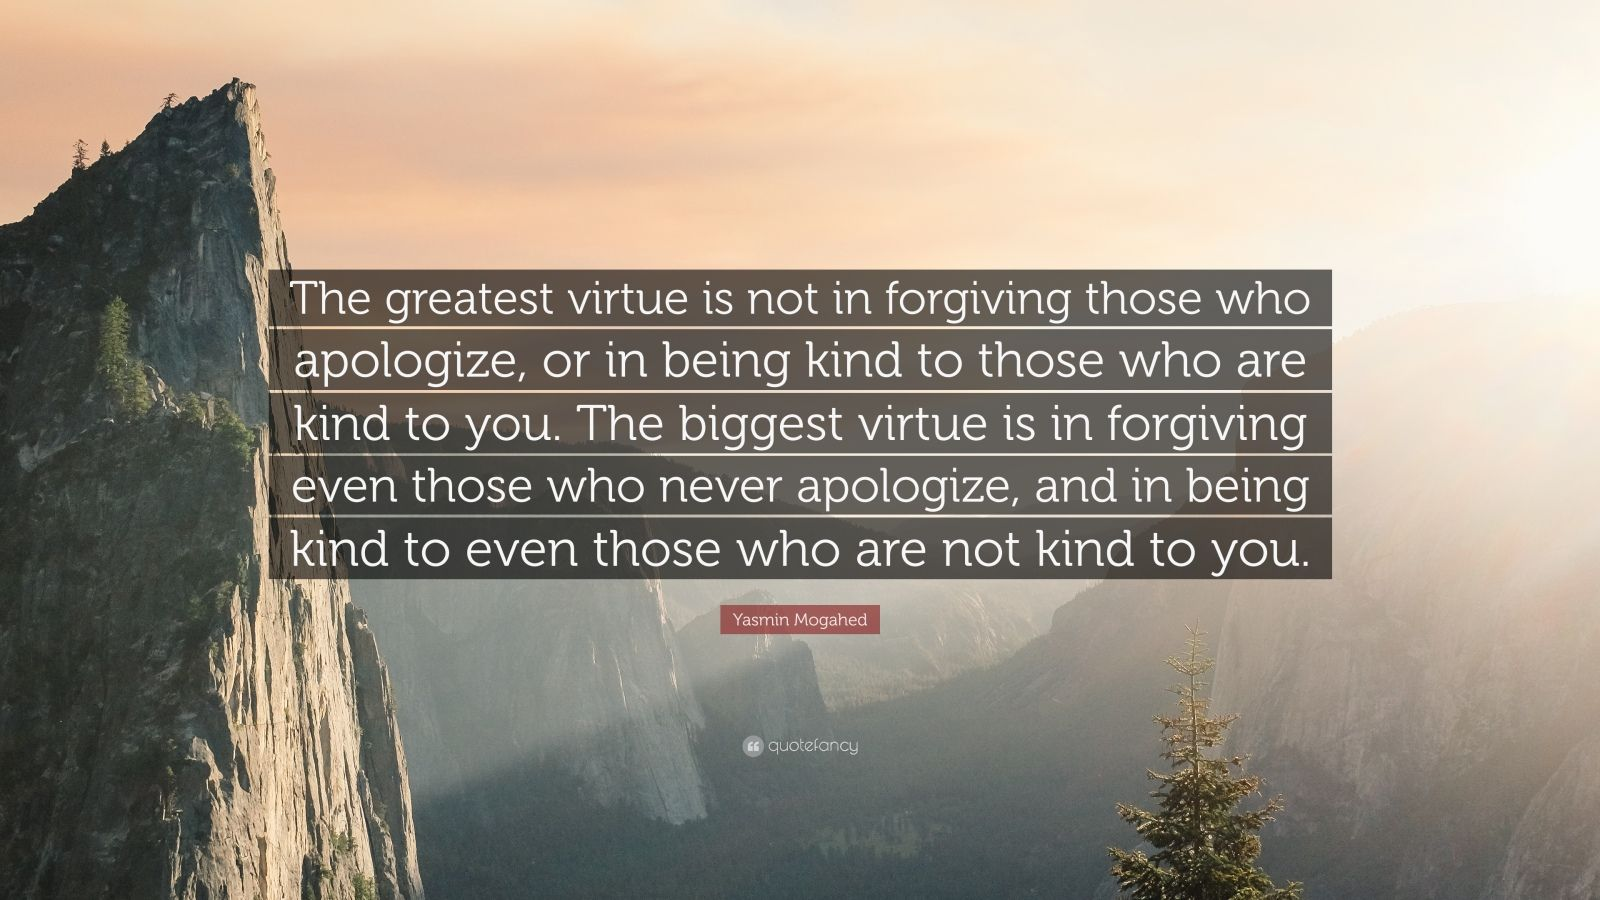 "Yasmin Mogahed Quote: ""The greatest virtue is not in forgiving those who apologize, or in being kind to those who are kind to you. The biggest virtue is in forgiving even those who never apologize, and in being kind to even those who are not kind to you."""